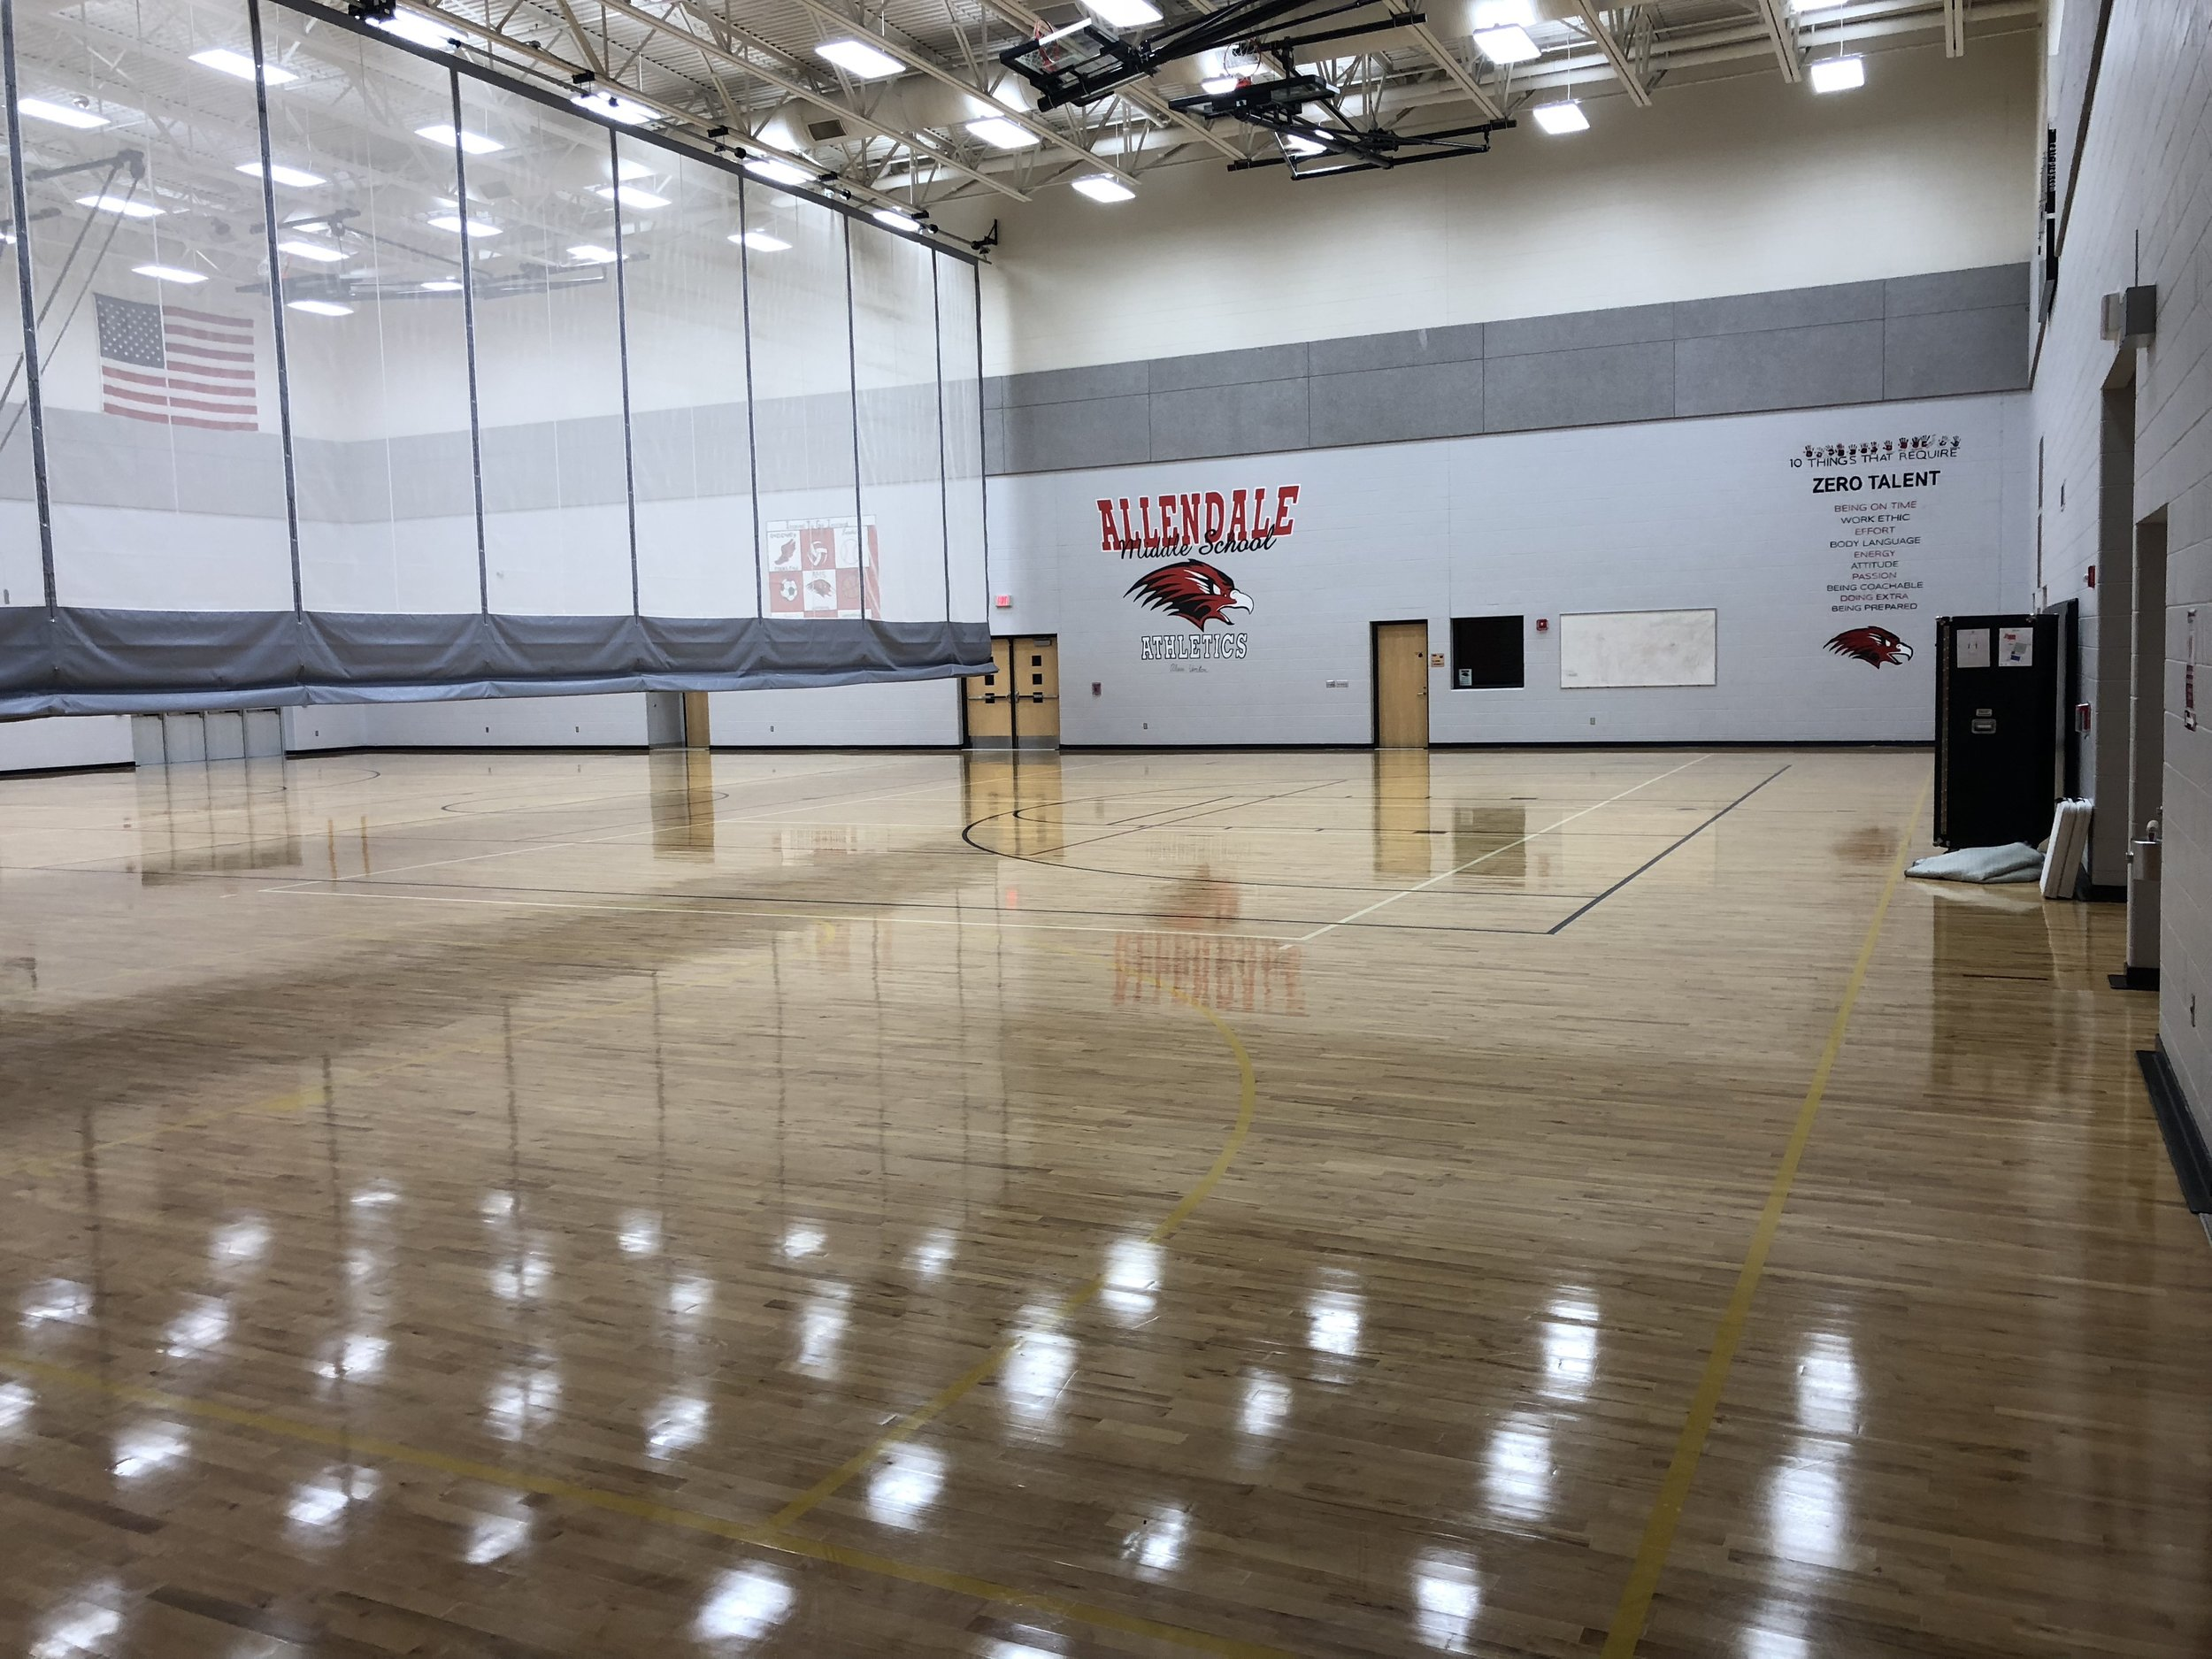 Life West church allendale michigan empty gym.JPG